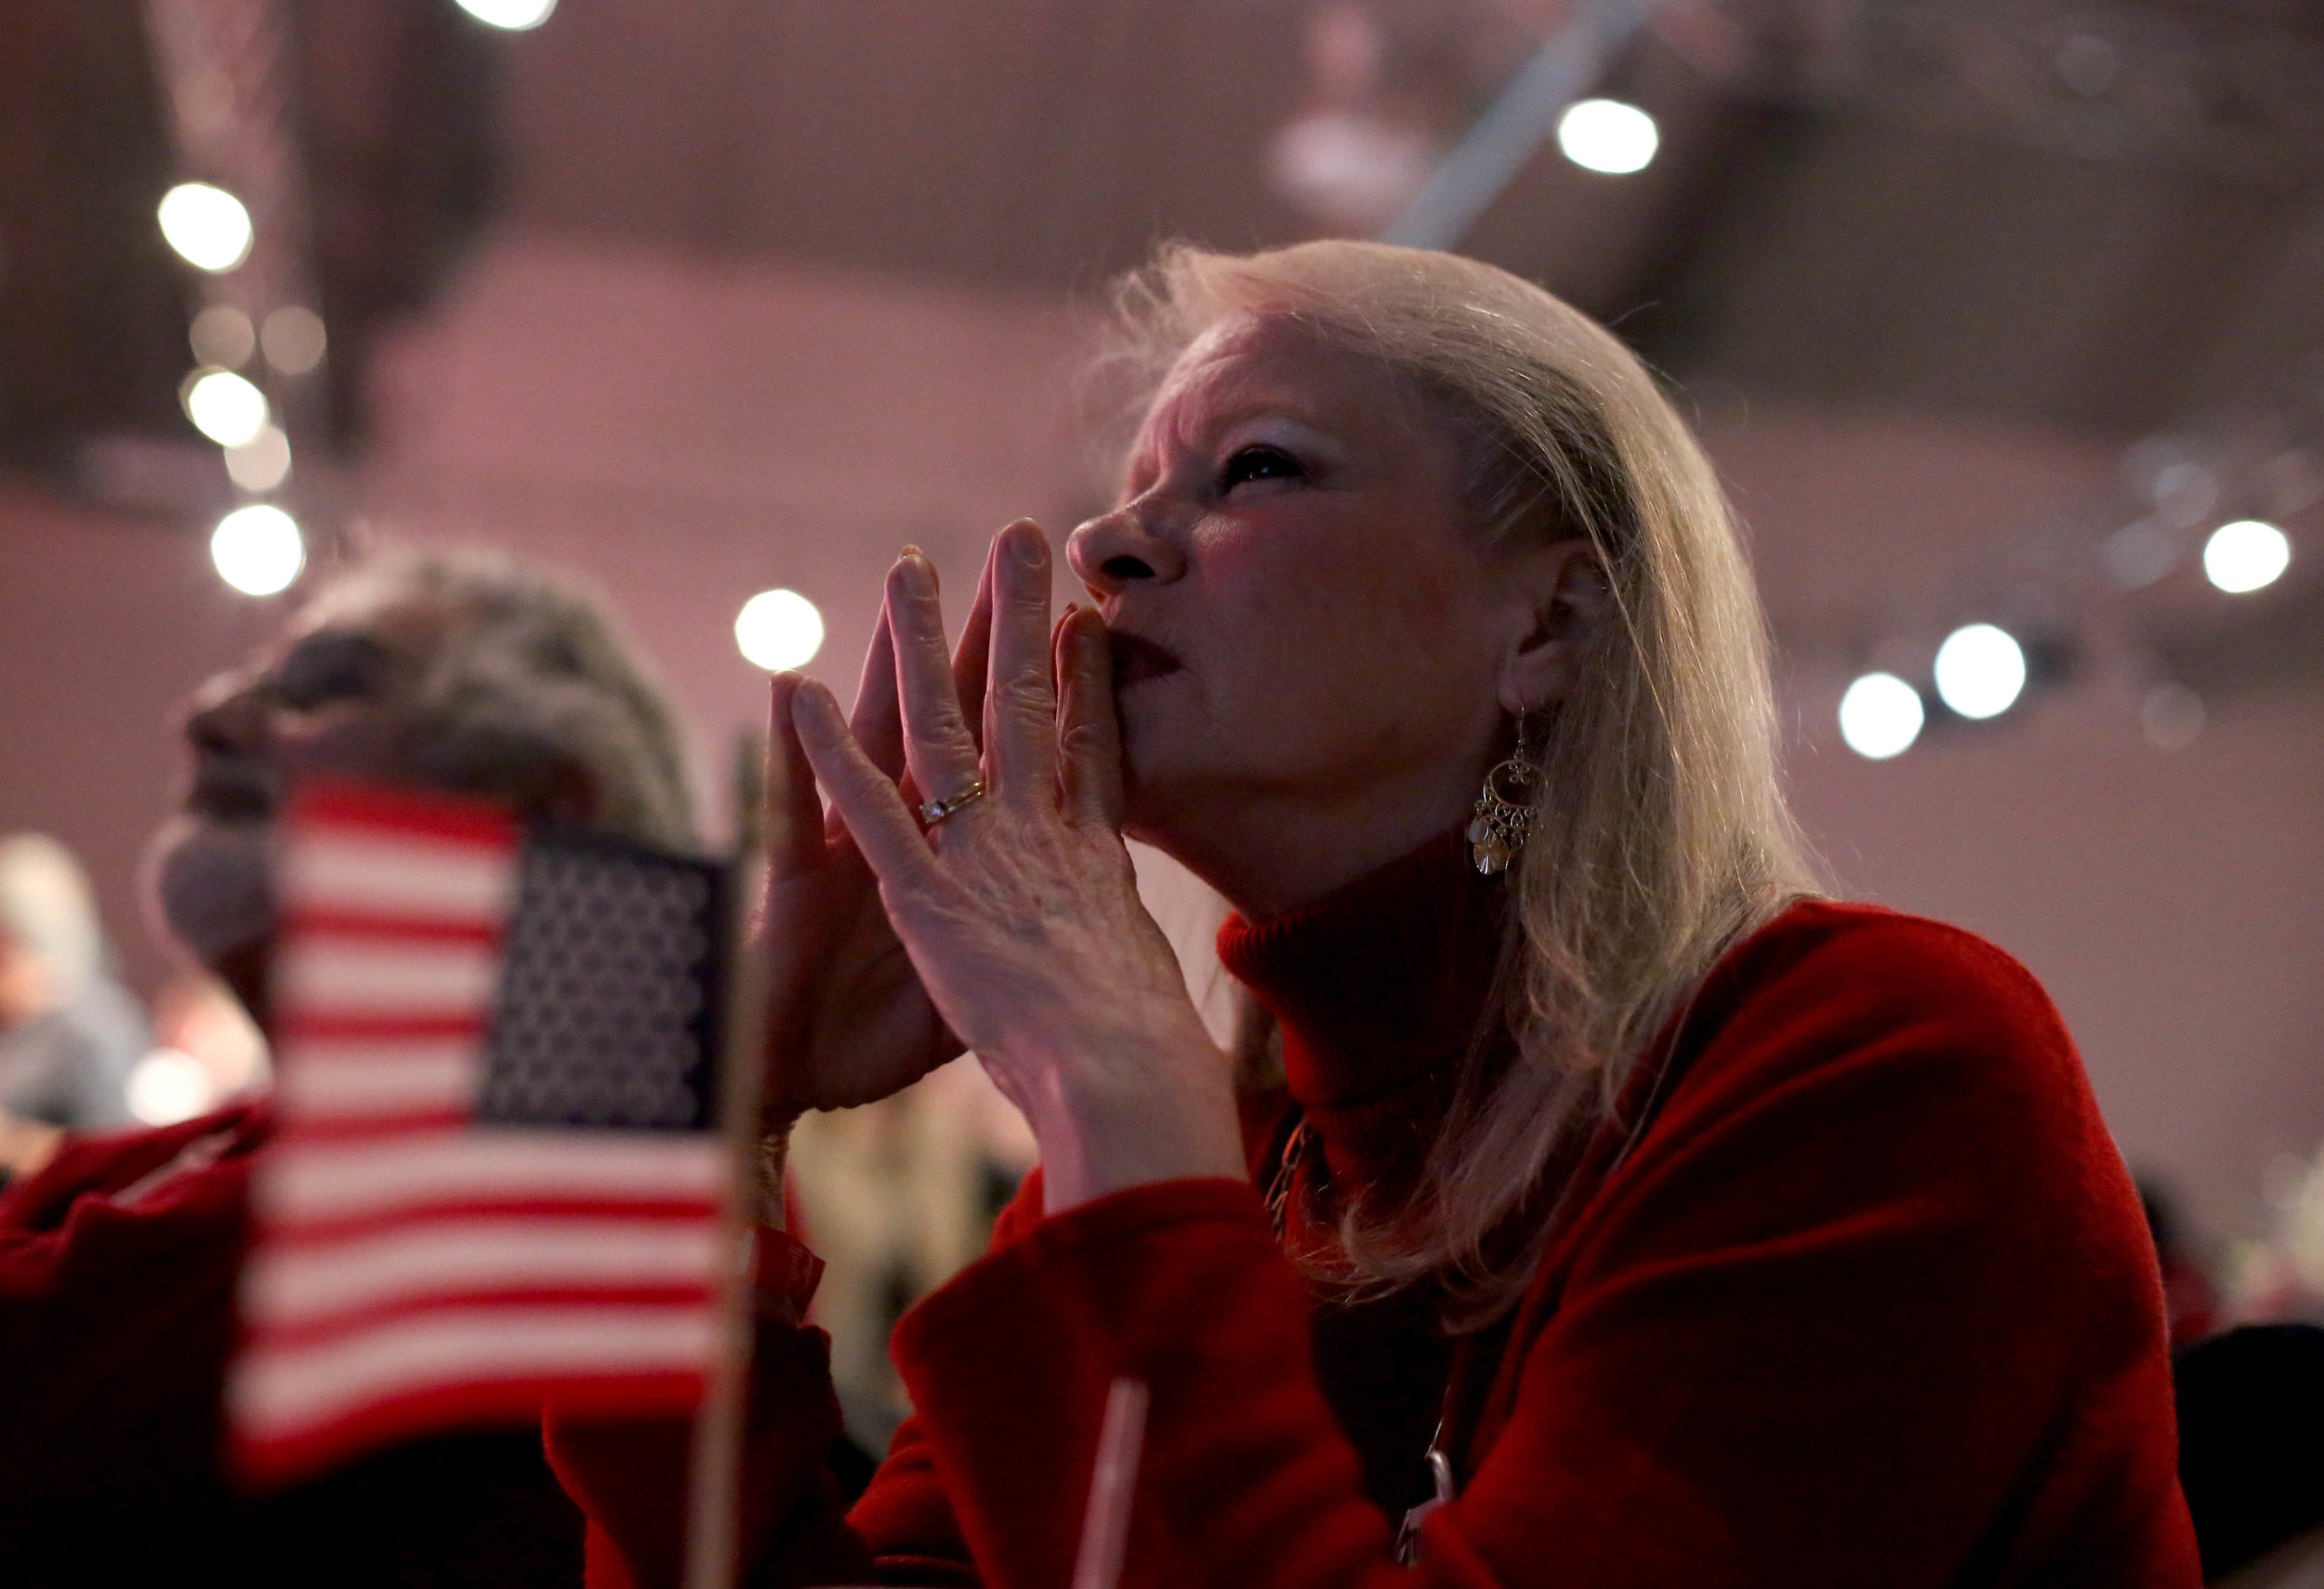 Diane LaRaiea, 64, reacts to Fox News election results during the Massachusetts Trump-Pence Campaign victory party at the F1 Boston race track in Braintree, Mass. Supporters gathered to watch live polling results and cheer for Donald J. Trump as he was elected the next president of the United States on Nov. 8, 2016.